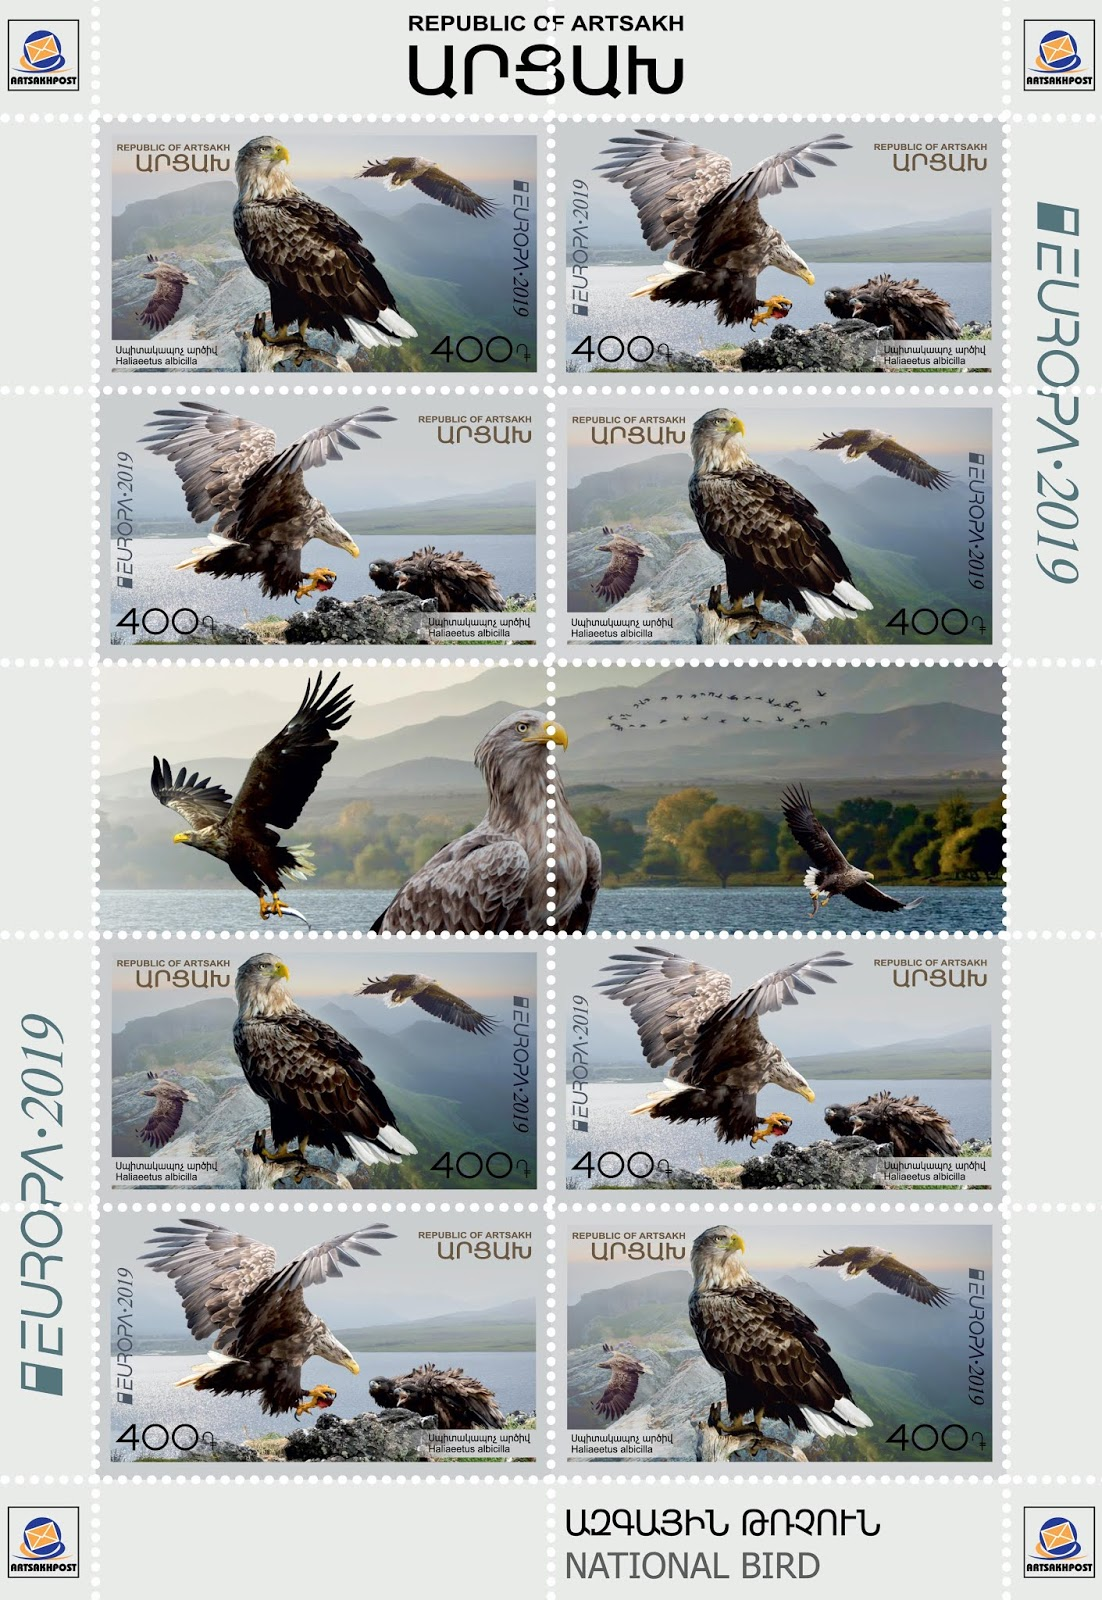 Artsakh - National Birds, Europa (March 22, 2019) sheet of 10, 2 designs